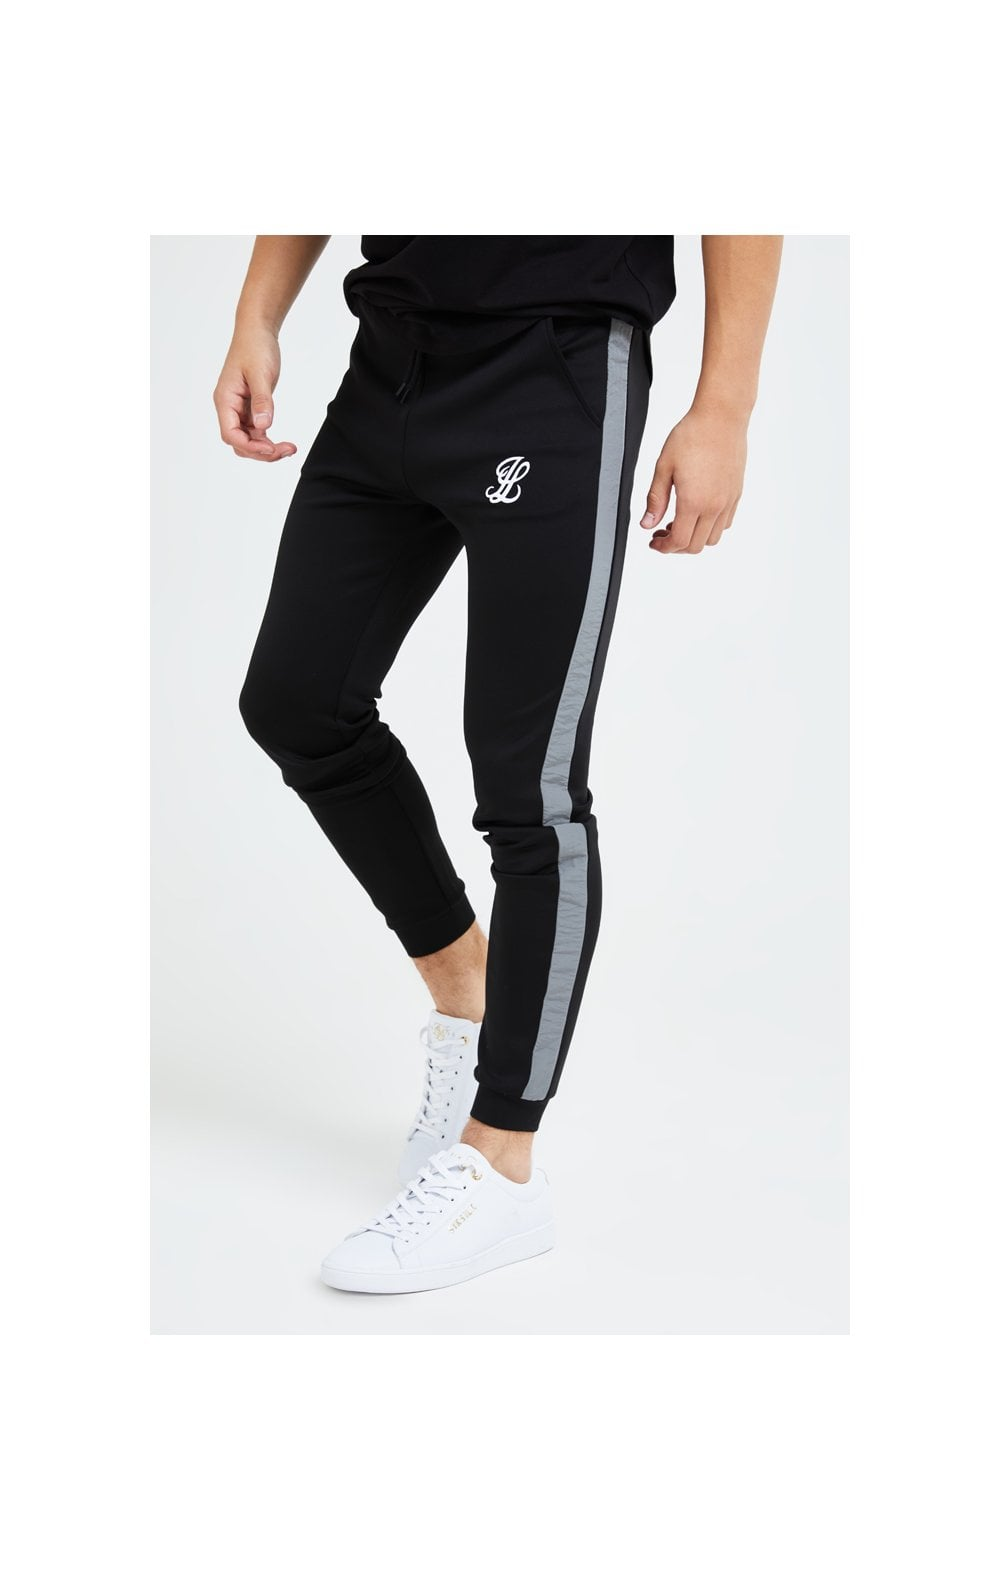 Illusive London Hybrid Joggers - Black & Grey